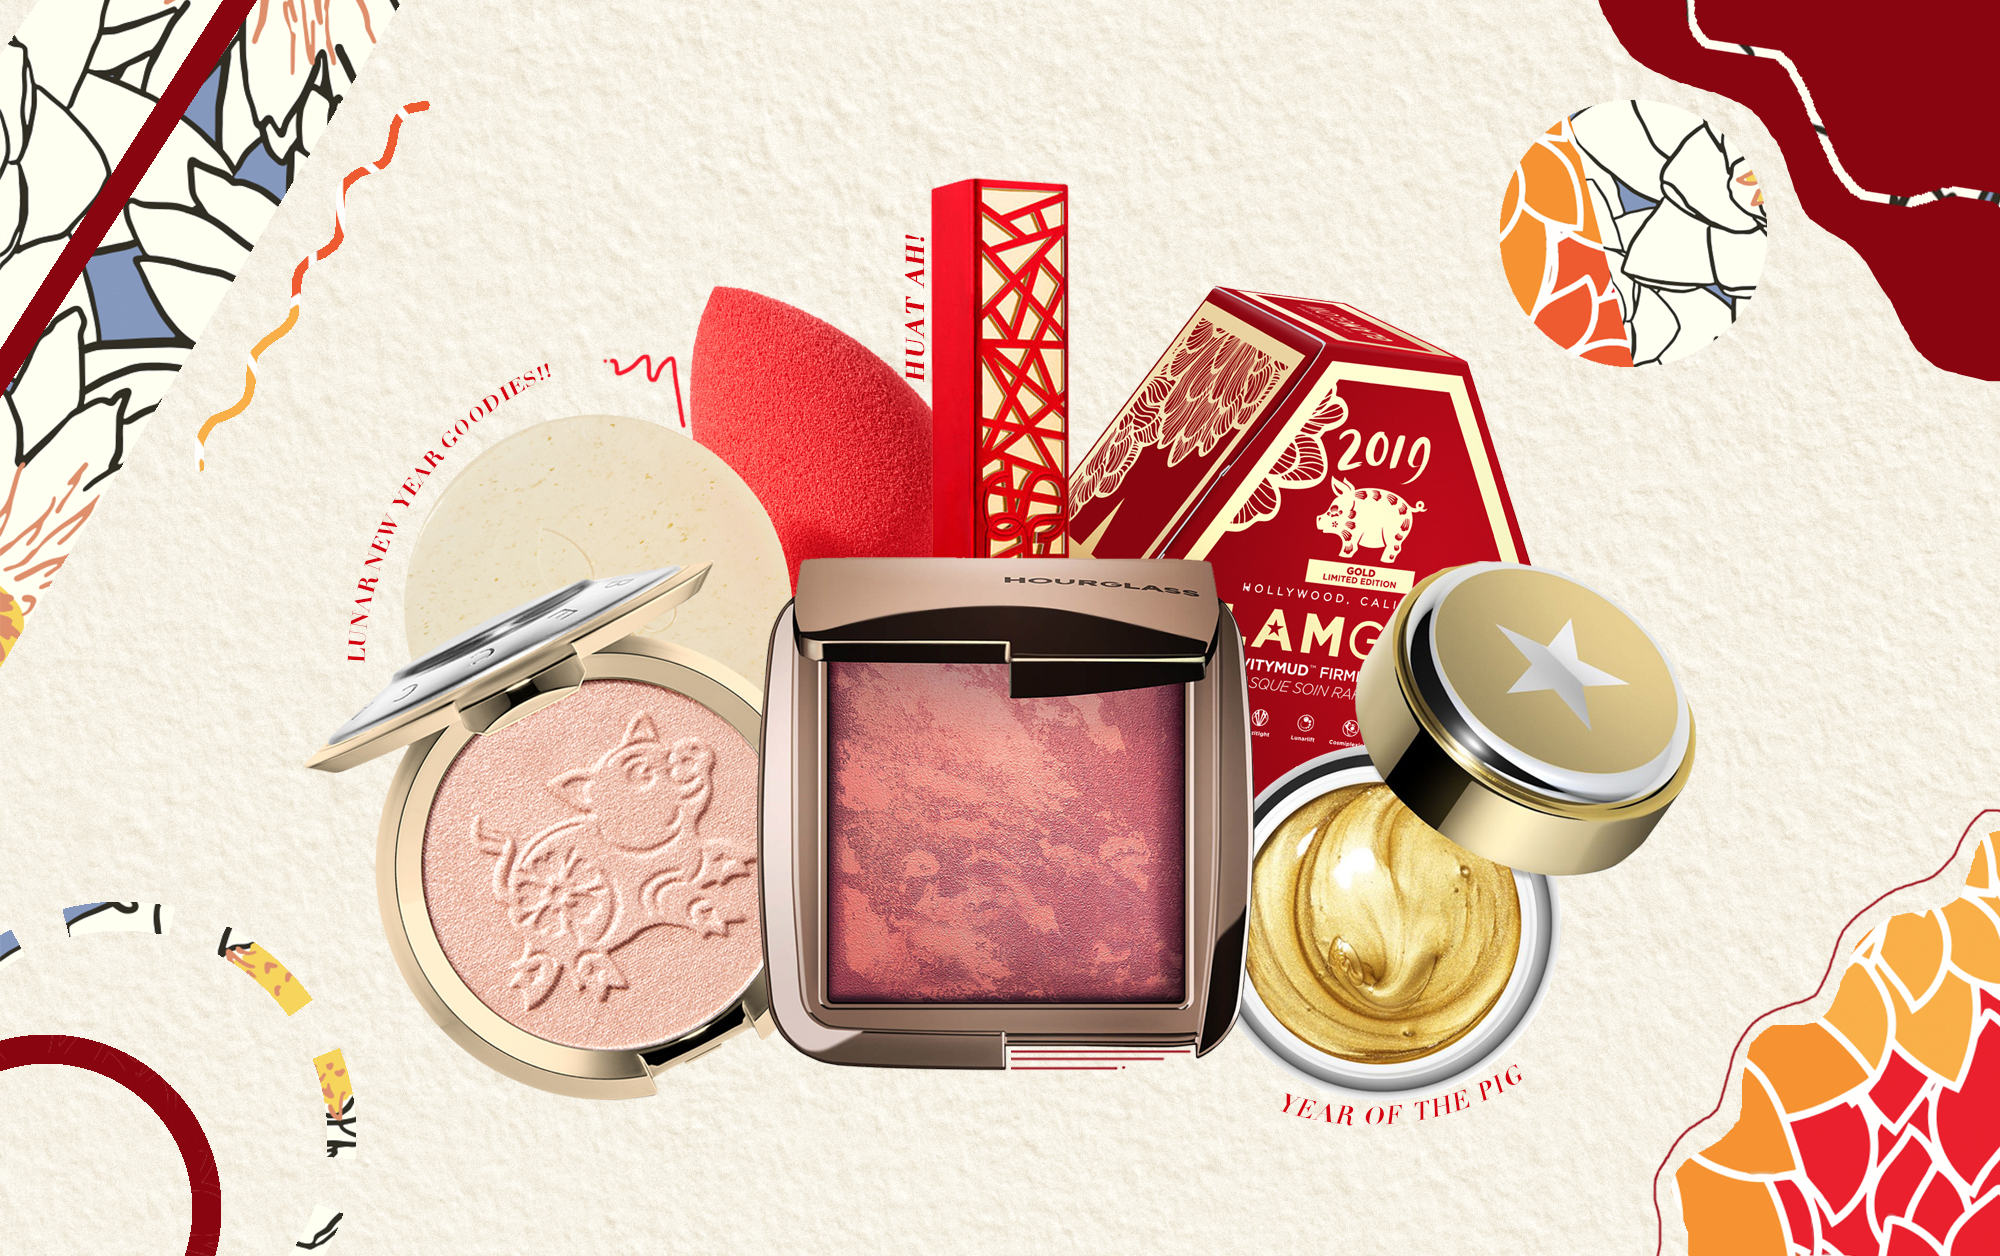 Sephora Just Released CNY-Themed Products And We're In Love